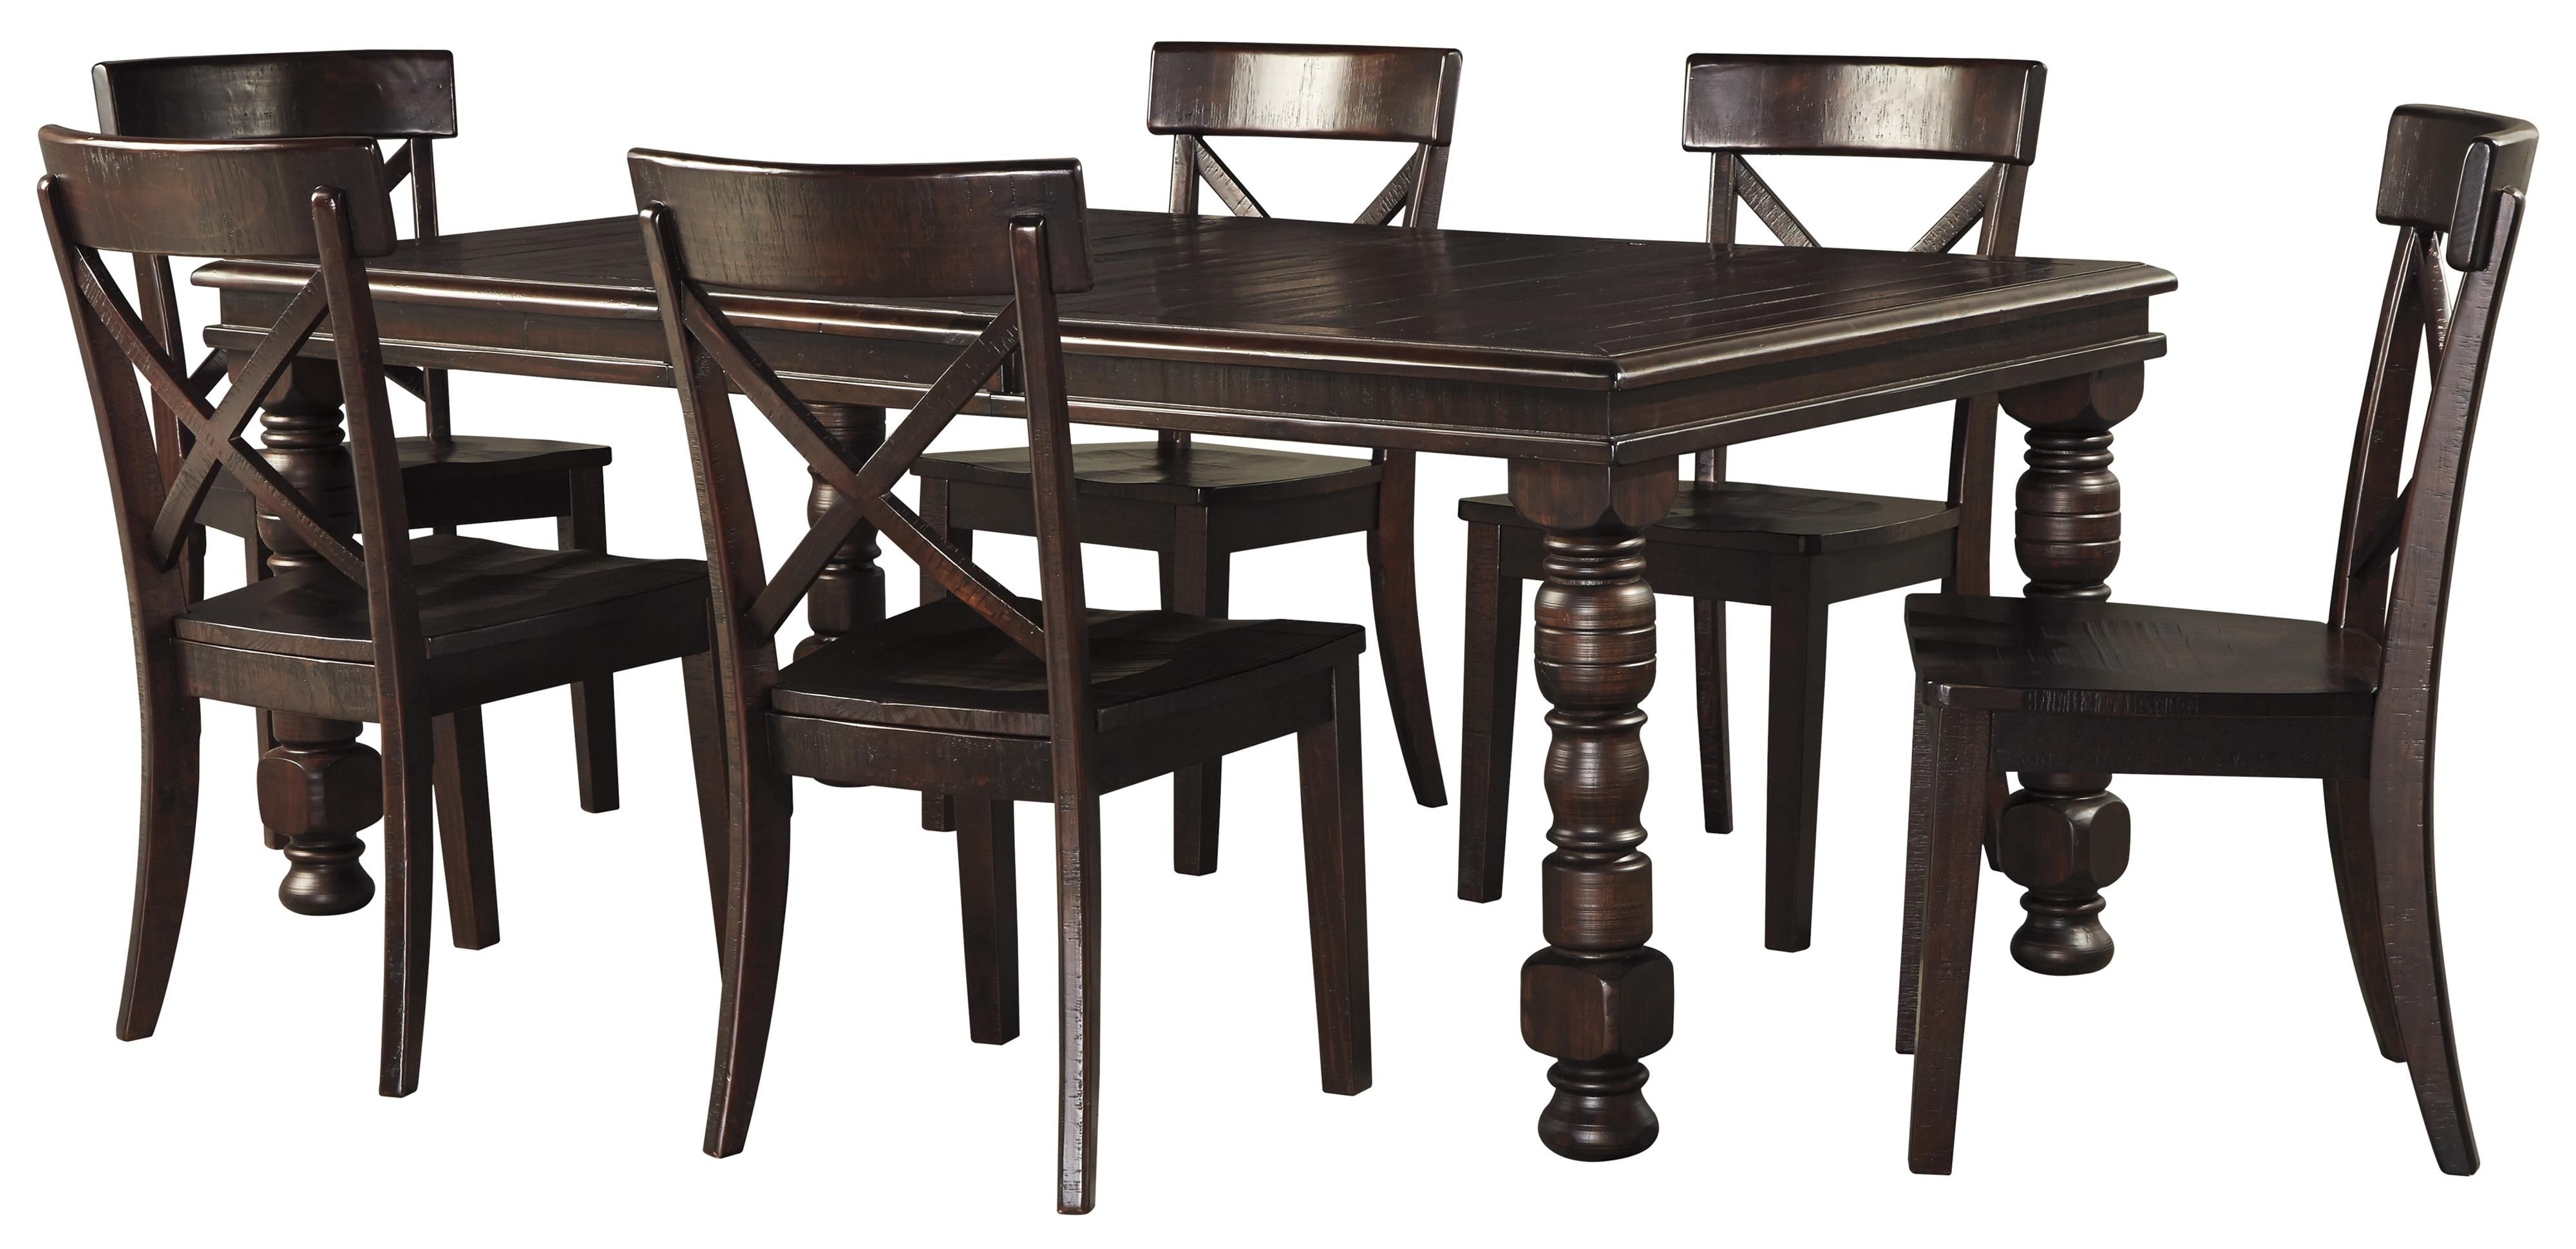 Gerlane 7 Piece Dining Table Setsignature Designashley With Regard To Trendy Laurent 7 Piece Rectangle Dining Sets With Wood Chairs (View 17 of 25)